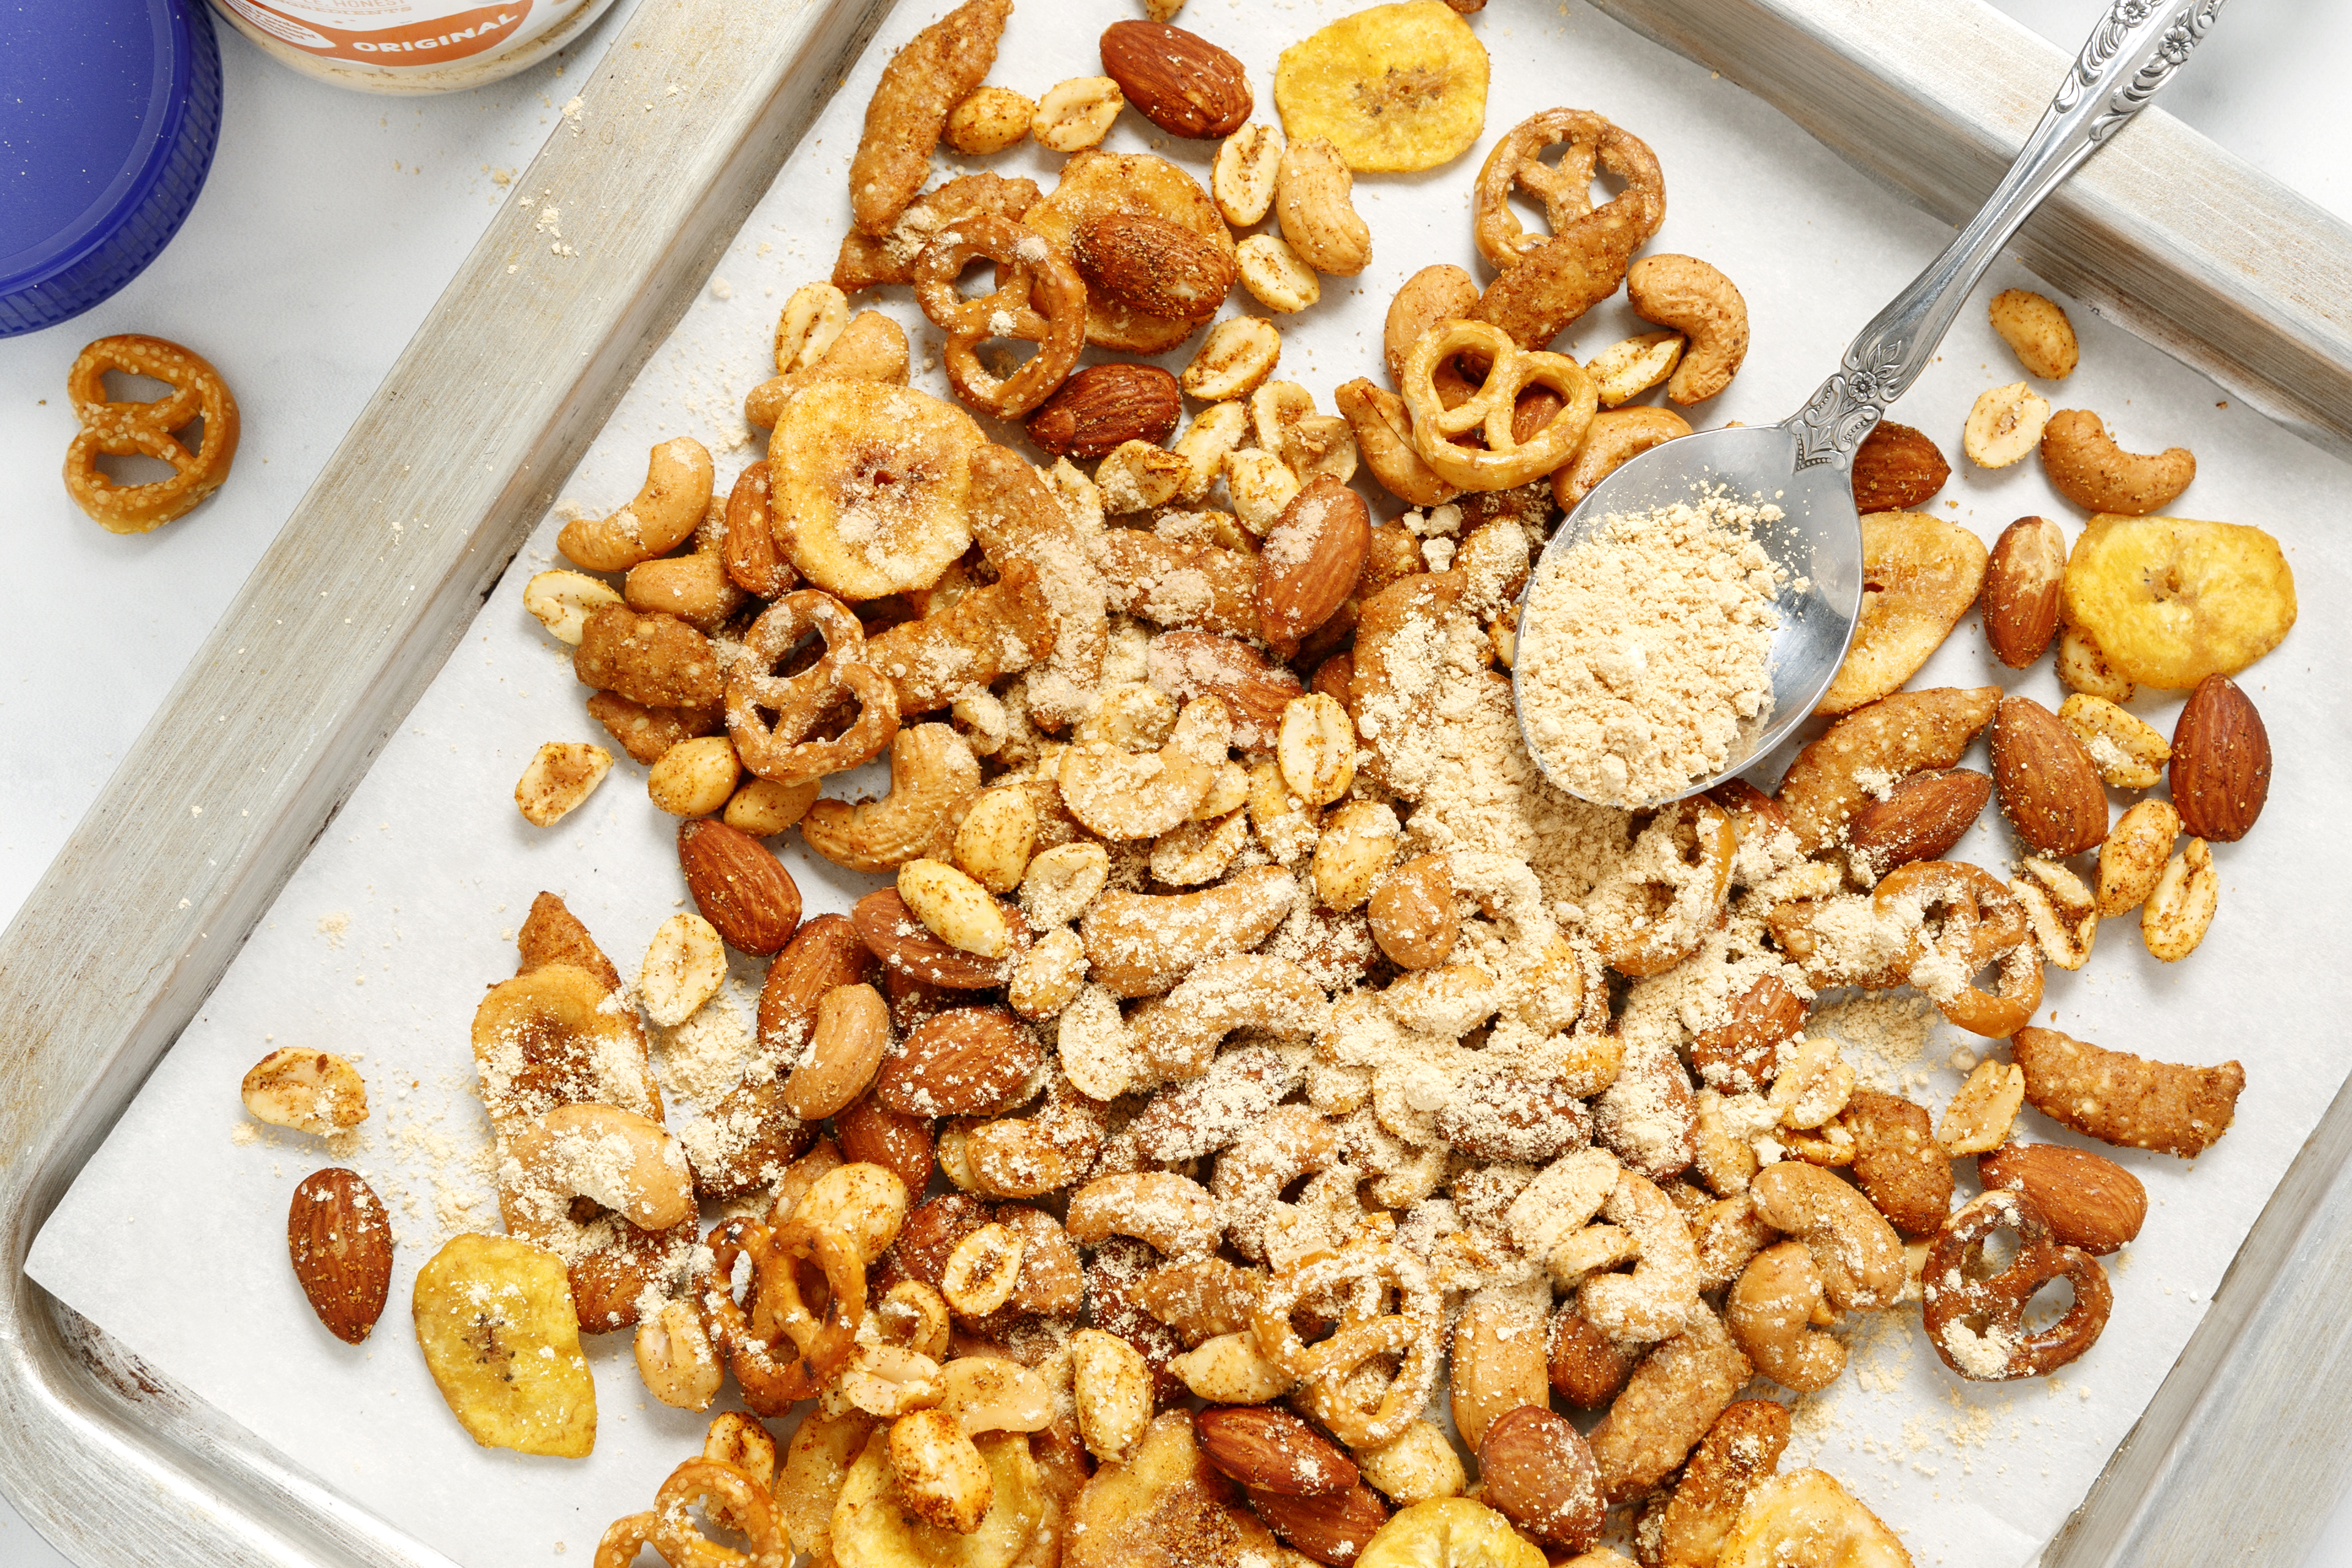 Spicy Peanut Butter Snack Mix